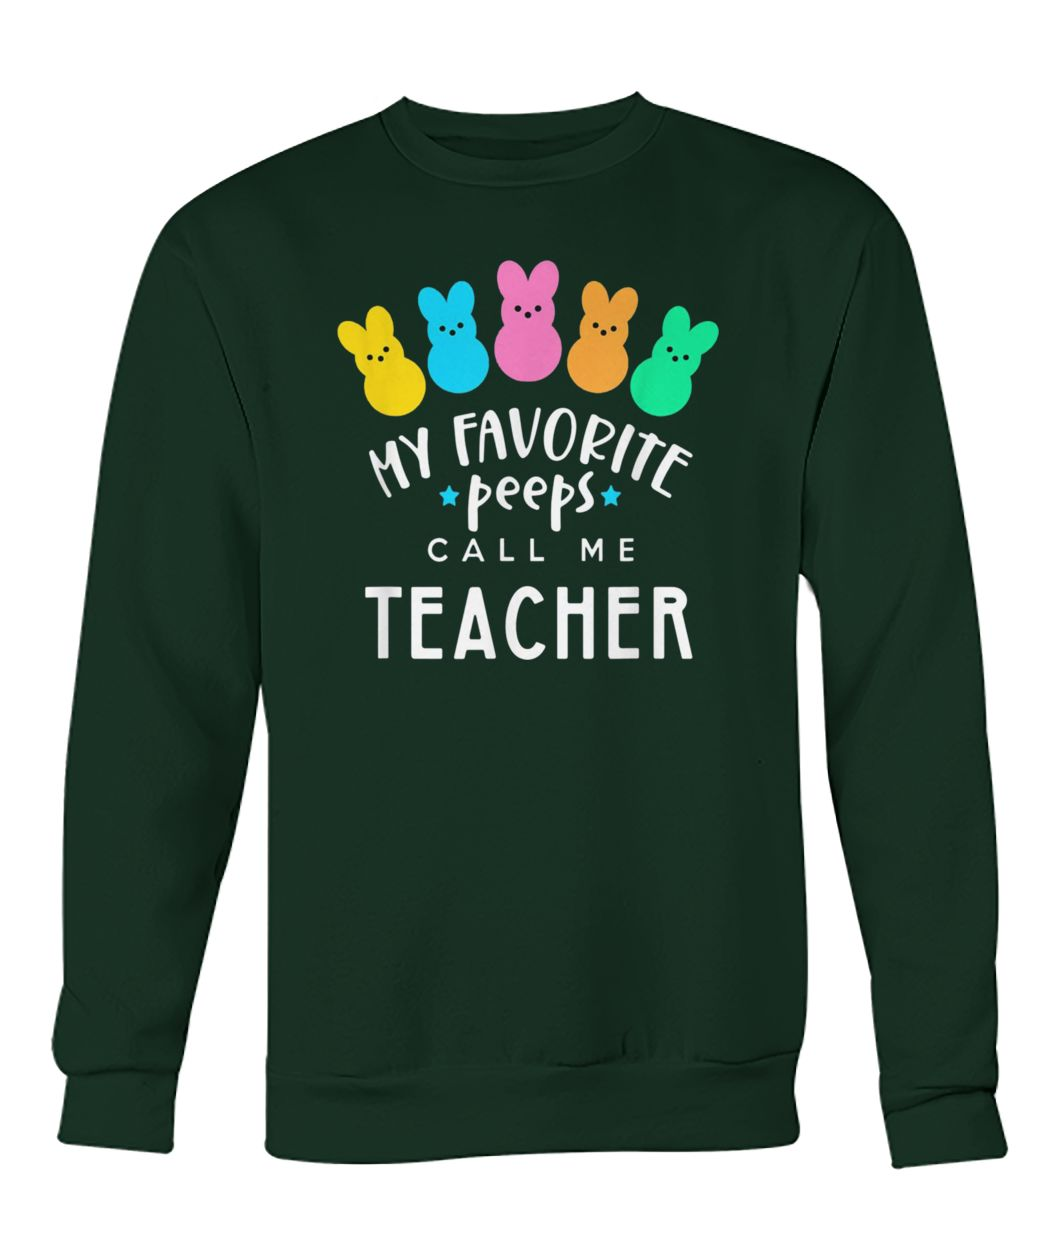 My favorite peeps call me teacher easter day crew neck sweatshirt